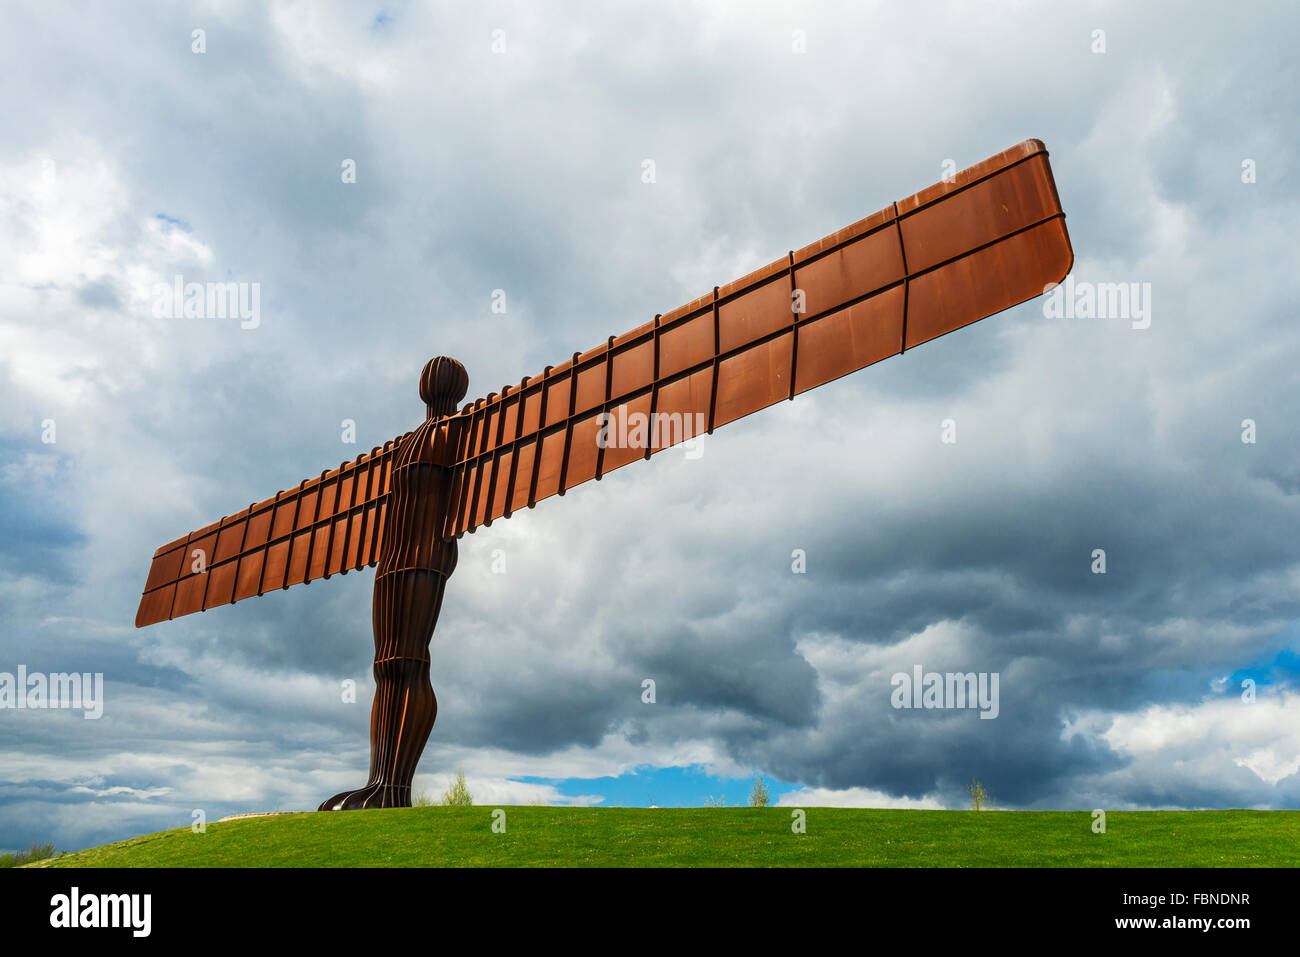 Engel des europäischen Nordens Anthony Gormley Gateshead Tyne and Wear Nordostengland UK Stockbild